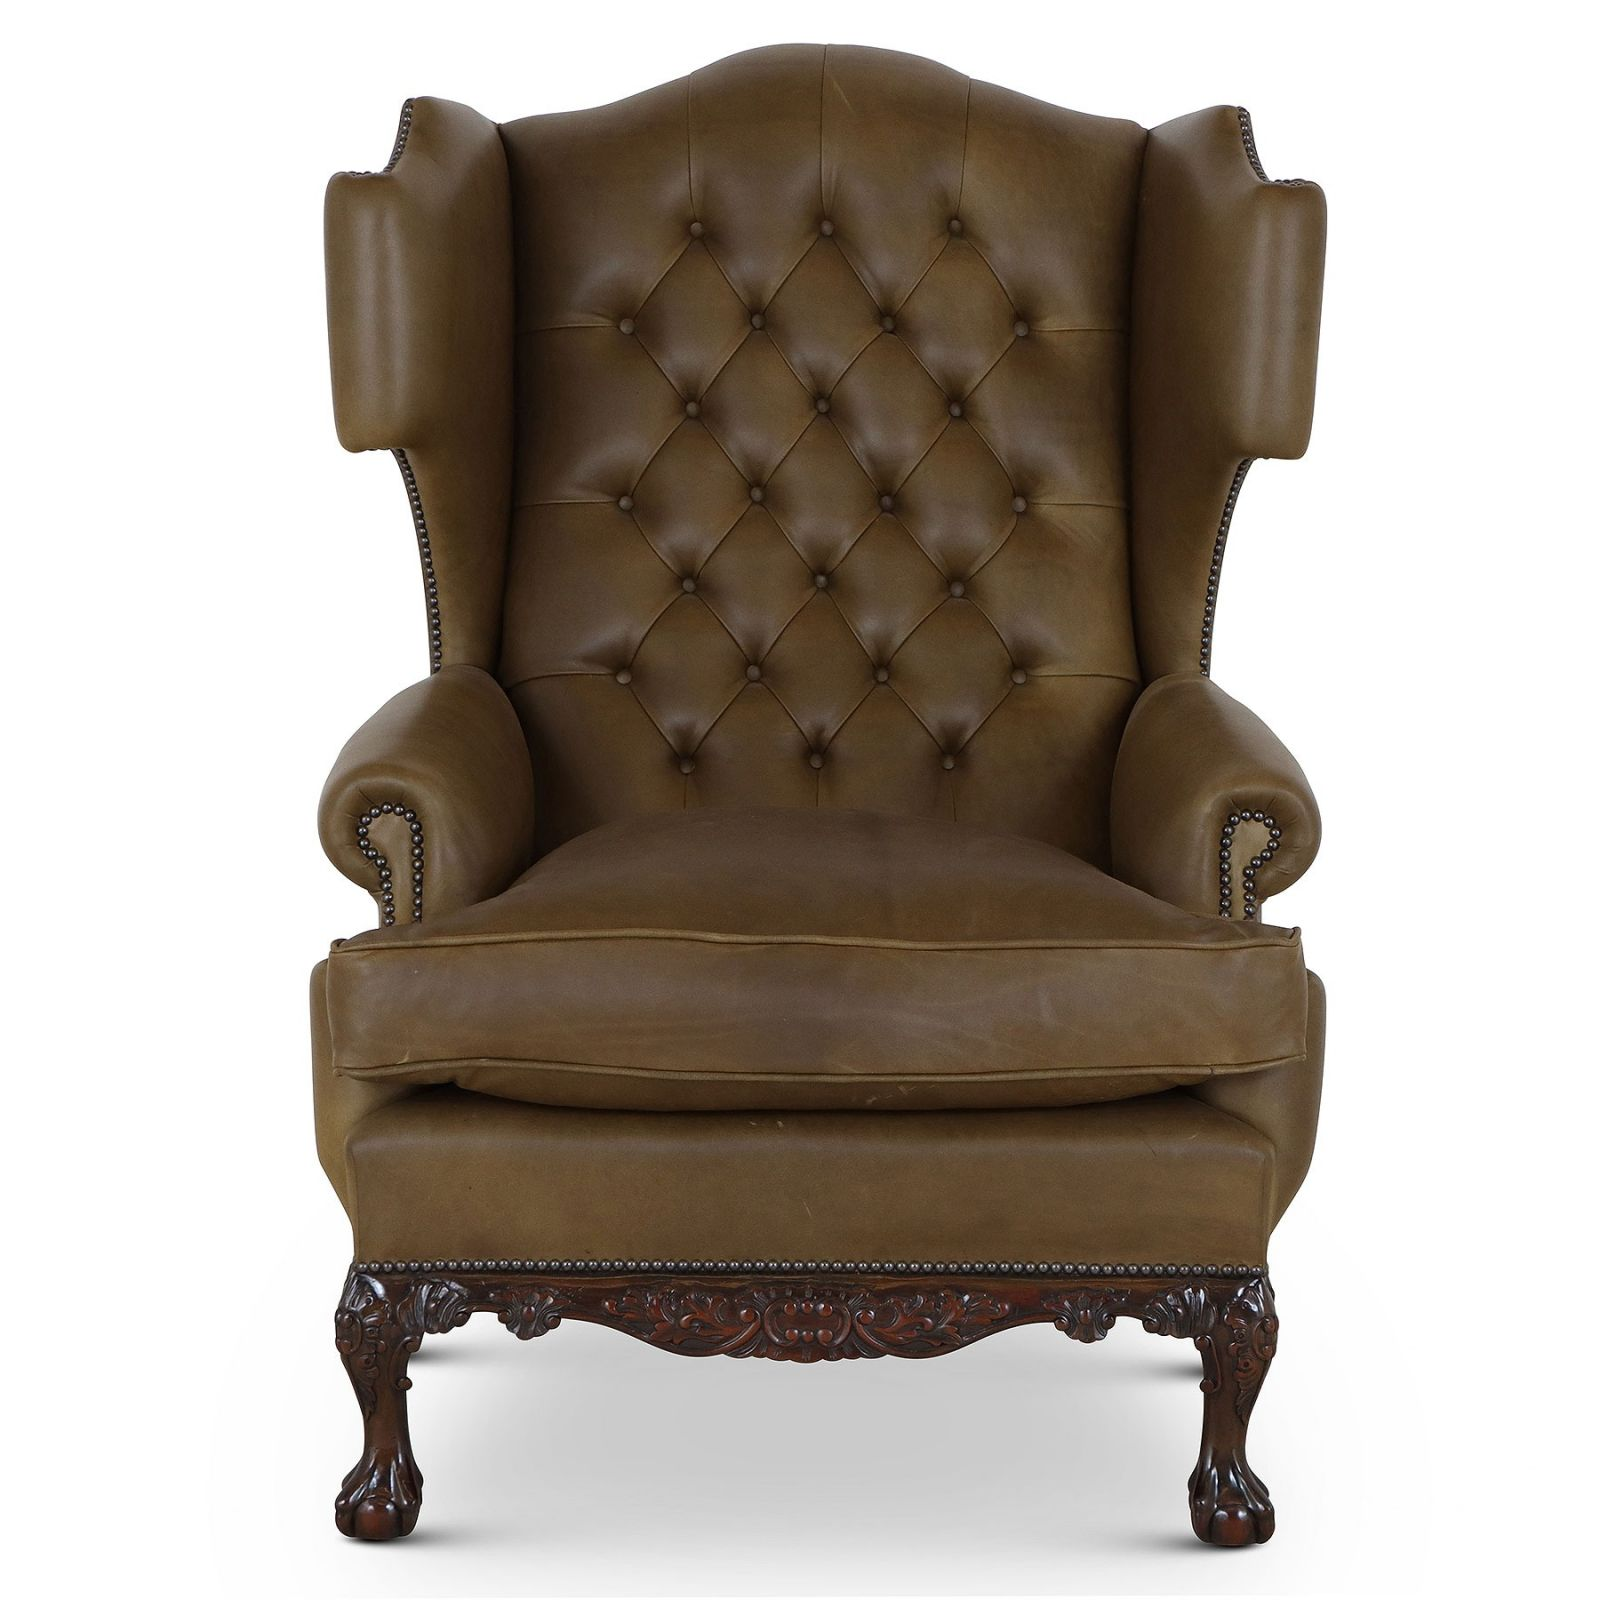 Dryden traditional buttoned leather wing chair - Olive green